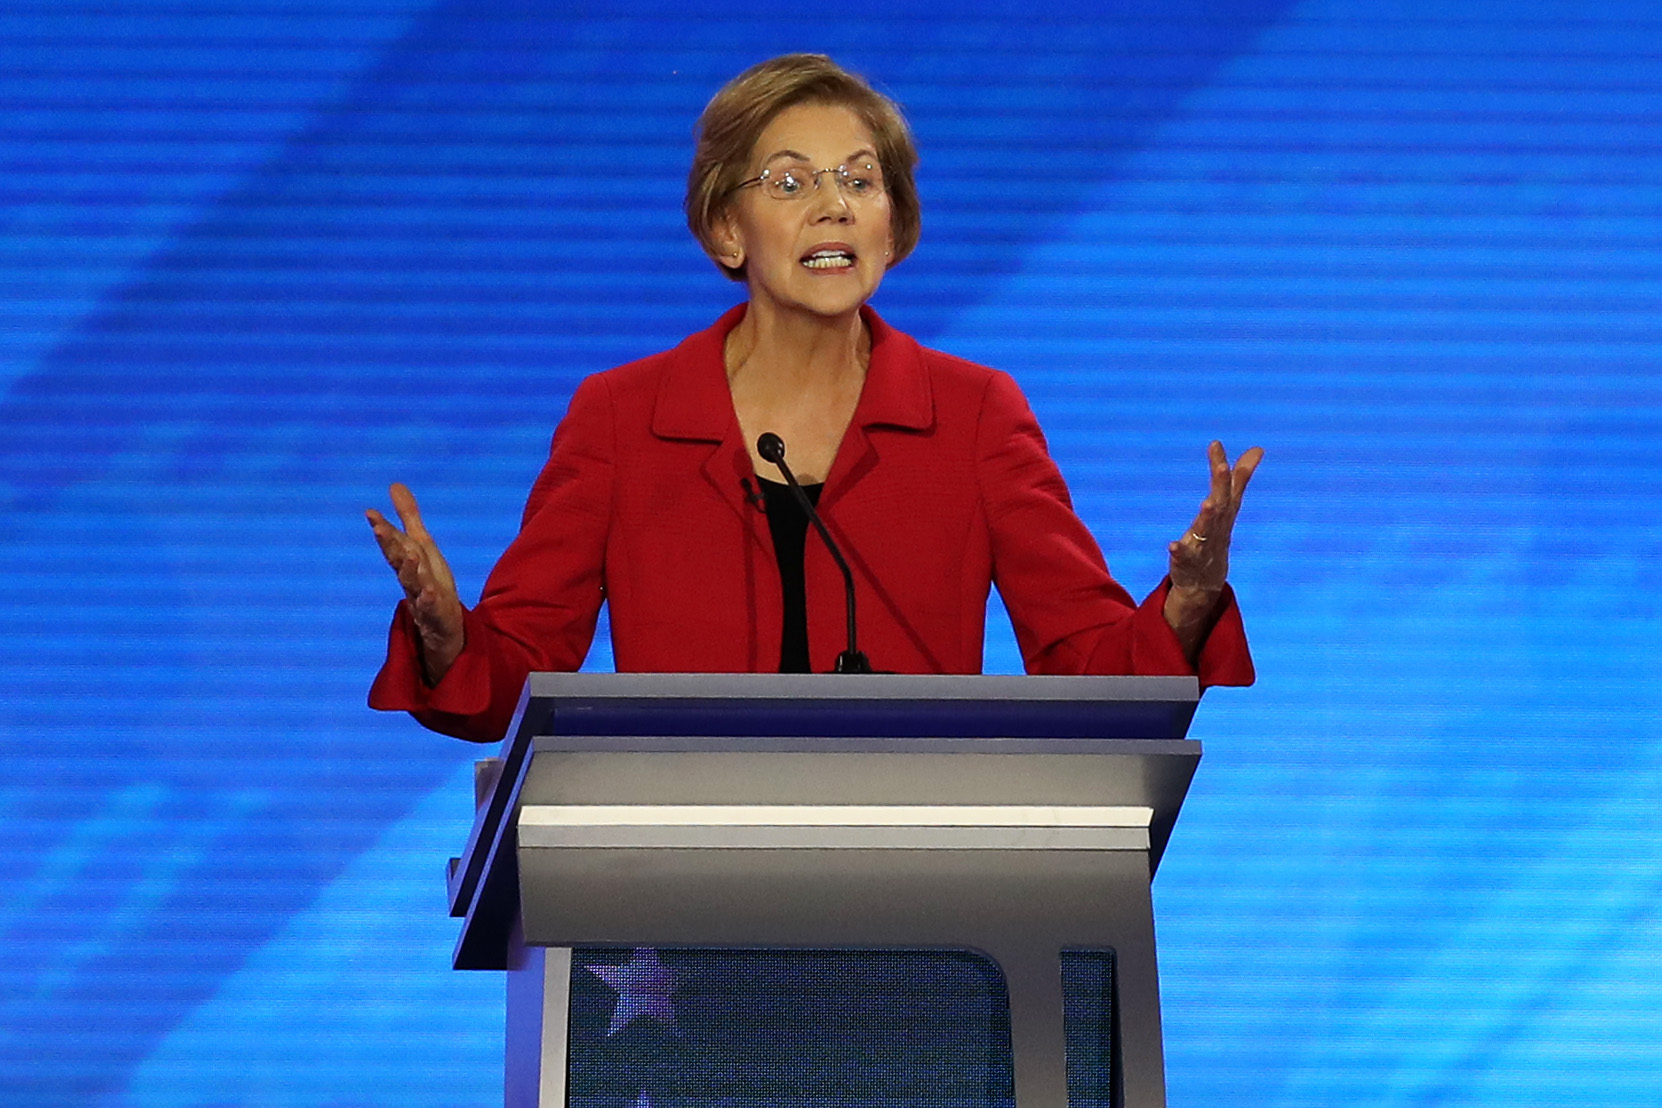 Democratic presidential candidate Sen. Elizabeth Warren participates in the Democratic presidential primary debate in the Sullivan Arena at St. Anselm College on February 07, 2020 in Manchester, New Hampshire. Seven candidates qualified for the second Democratic presidential primary debate of 2020 which comes just days before the New Hampshire primary on Feb. 11. (Photo by Joe Raedle/Getty Images)